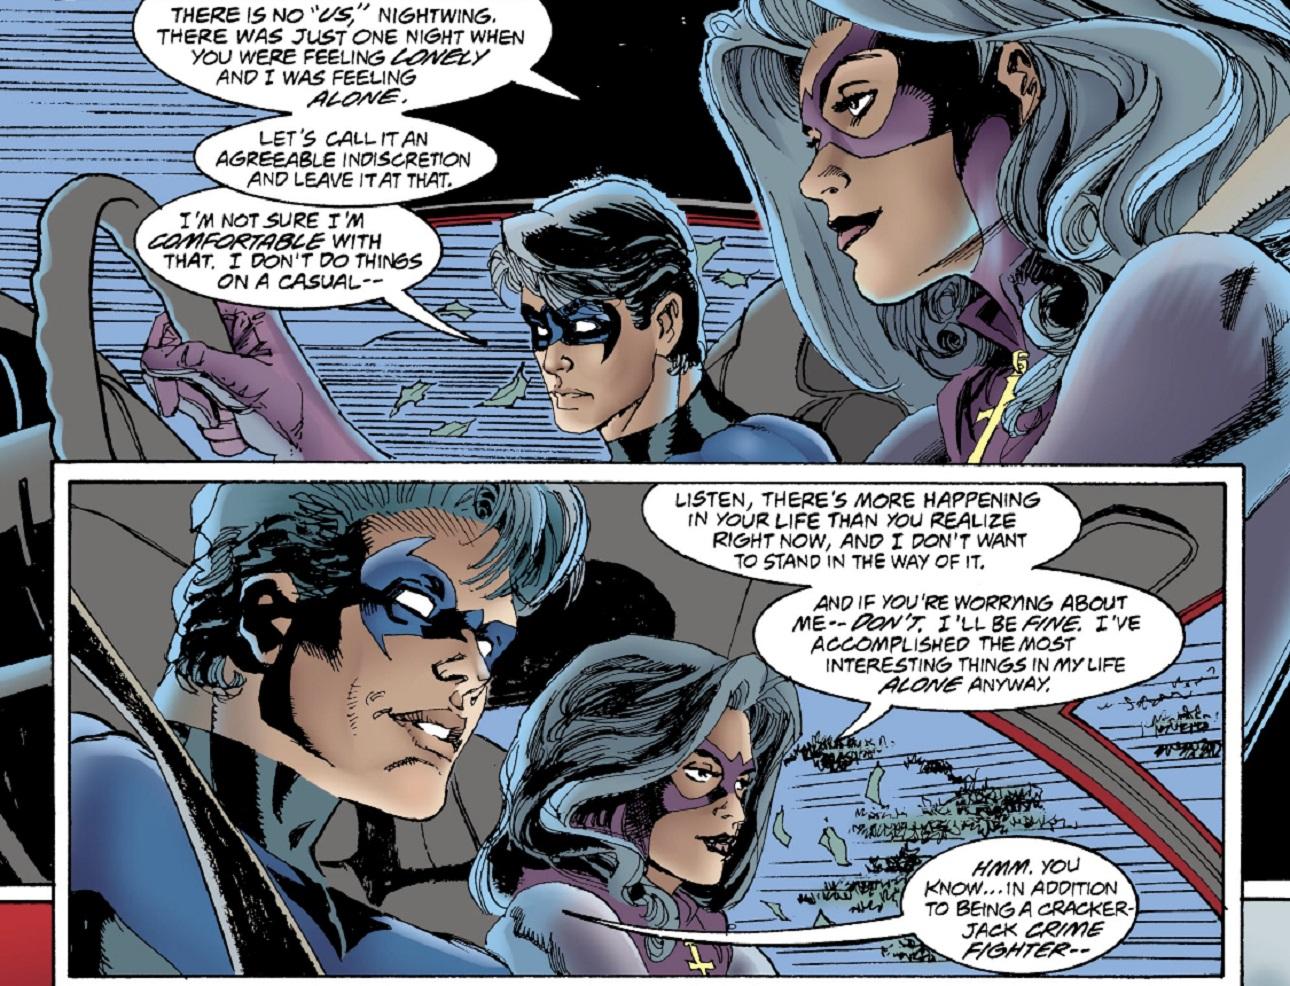 nightwing huntress 4.jpg